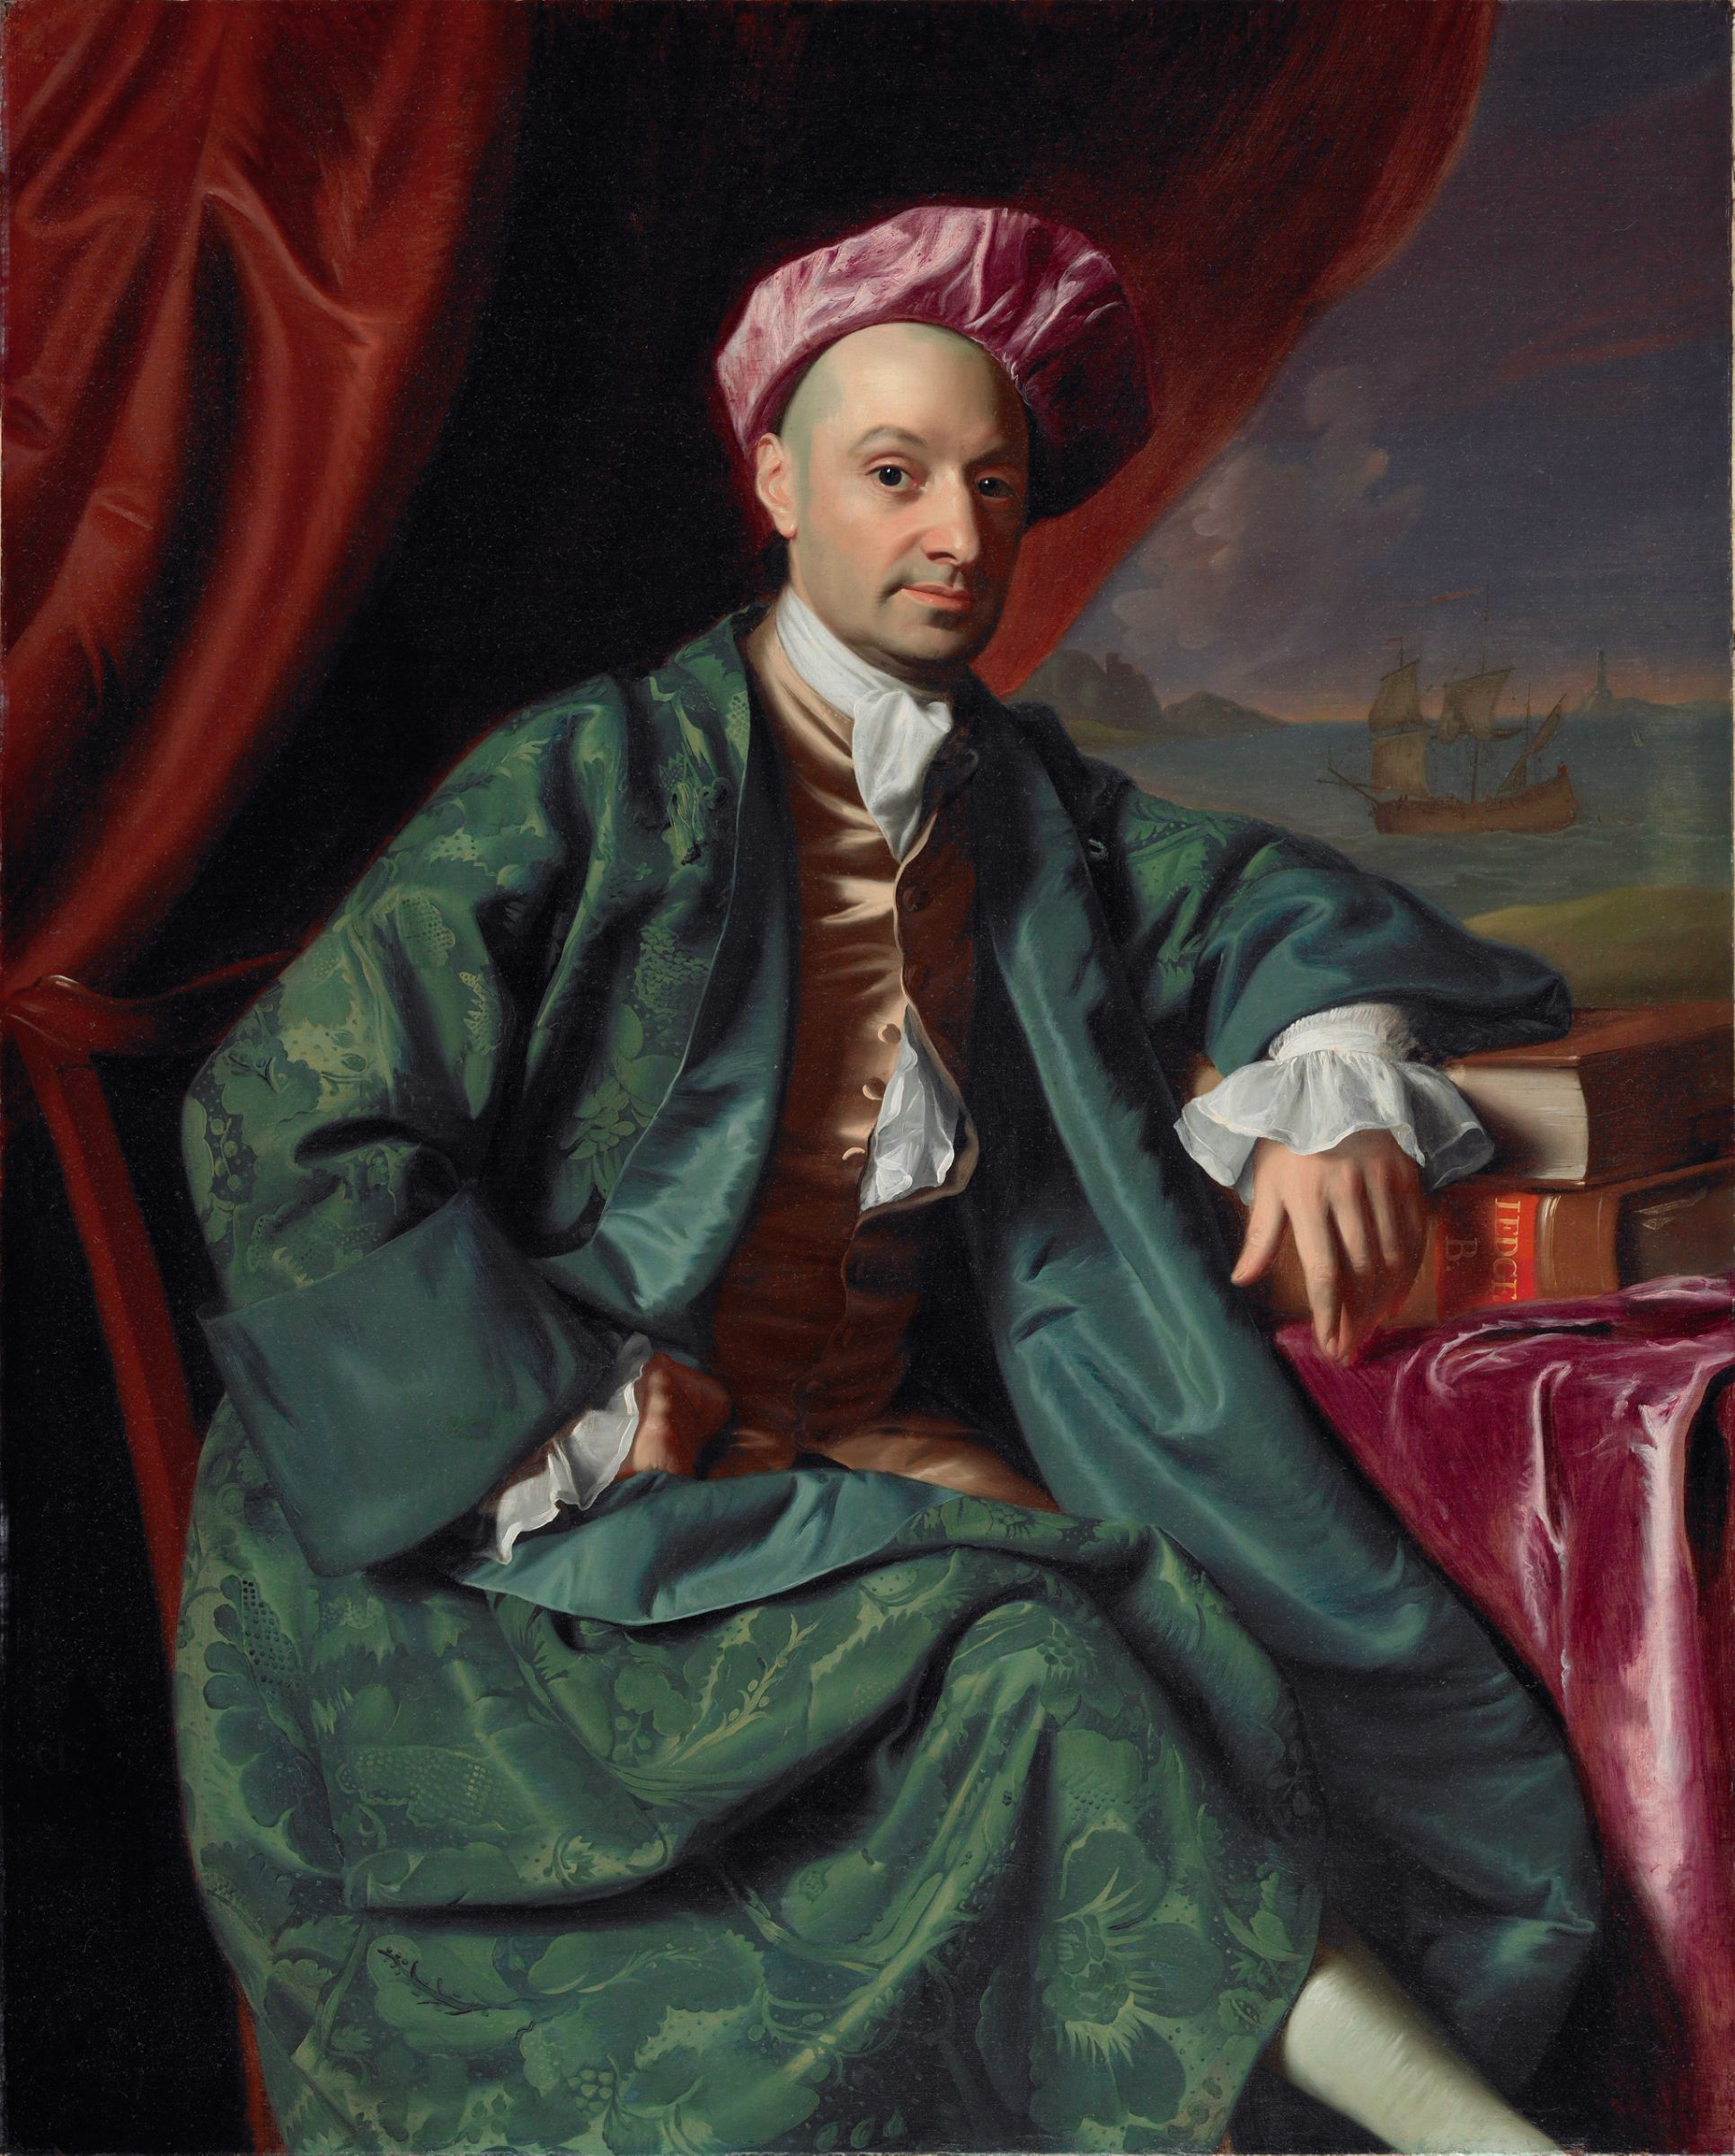 File:Nicholas Boylston by John Singleton Copley 1767.jpeg